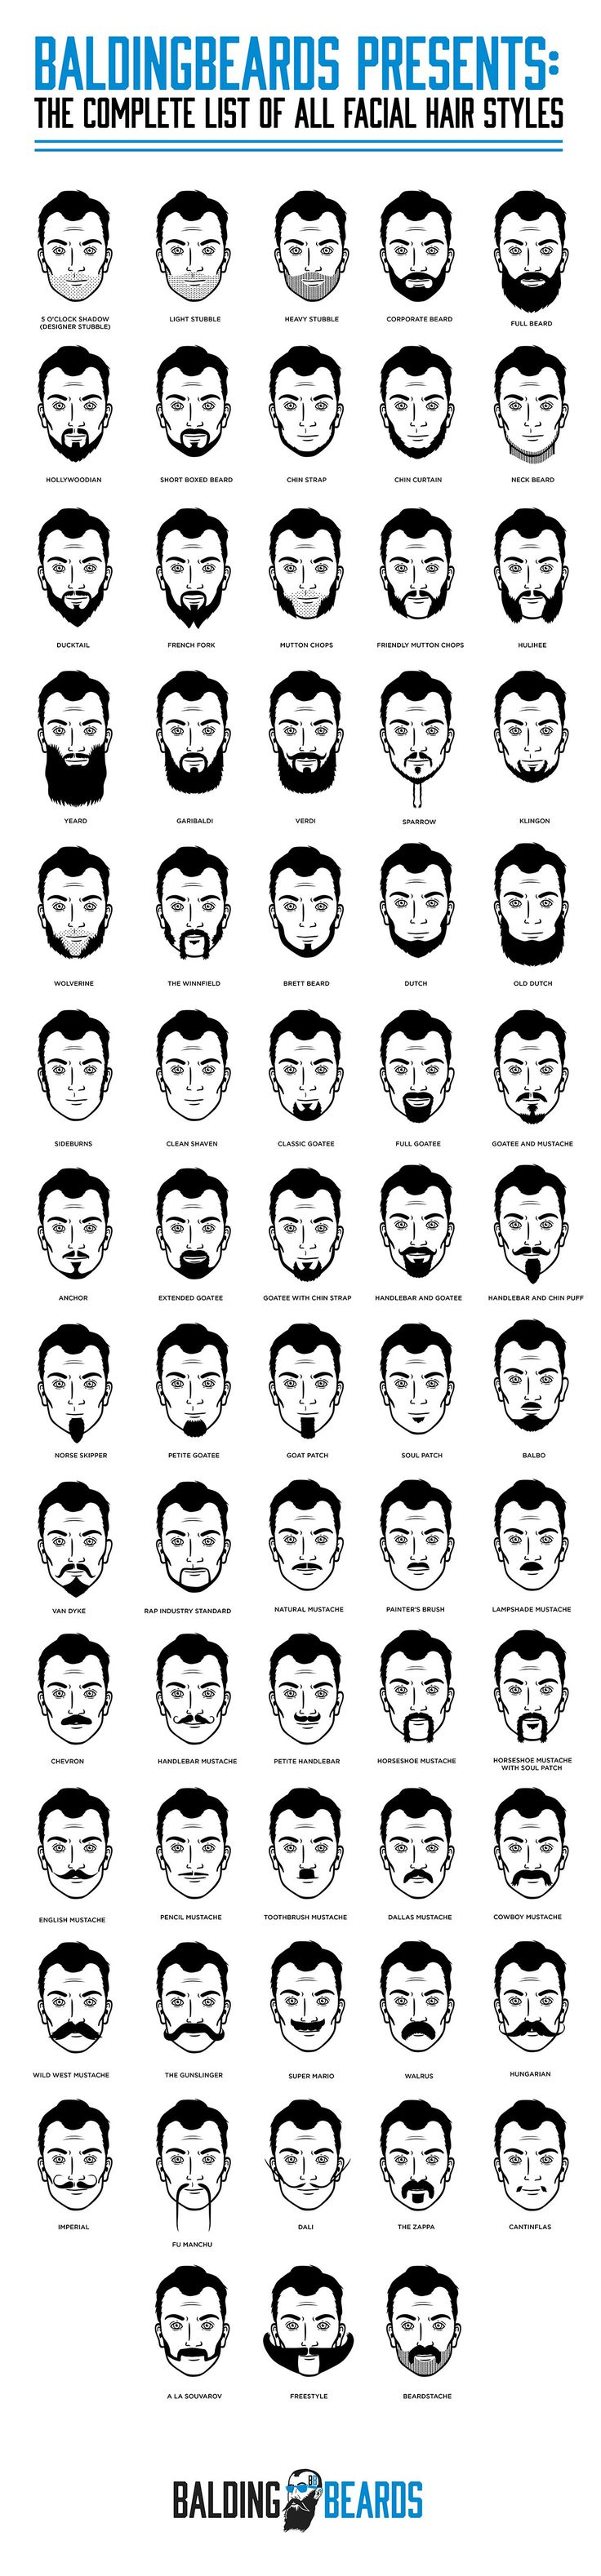 The Complete List Of All Facial Hair Styles #Infographic #LifeStyle...my hubby has the corporate beard, lol!